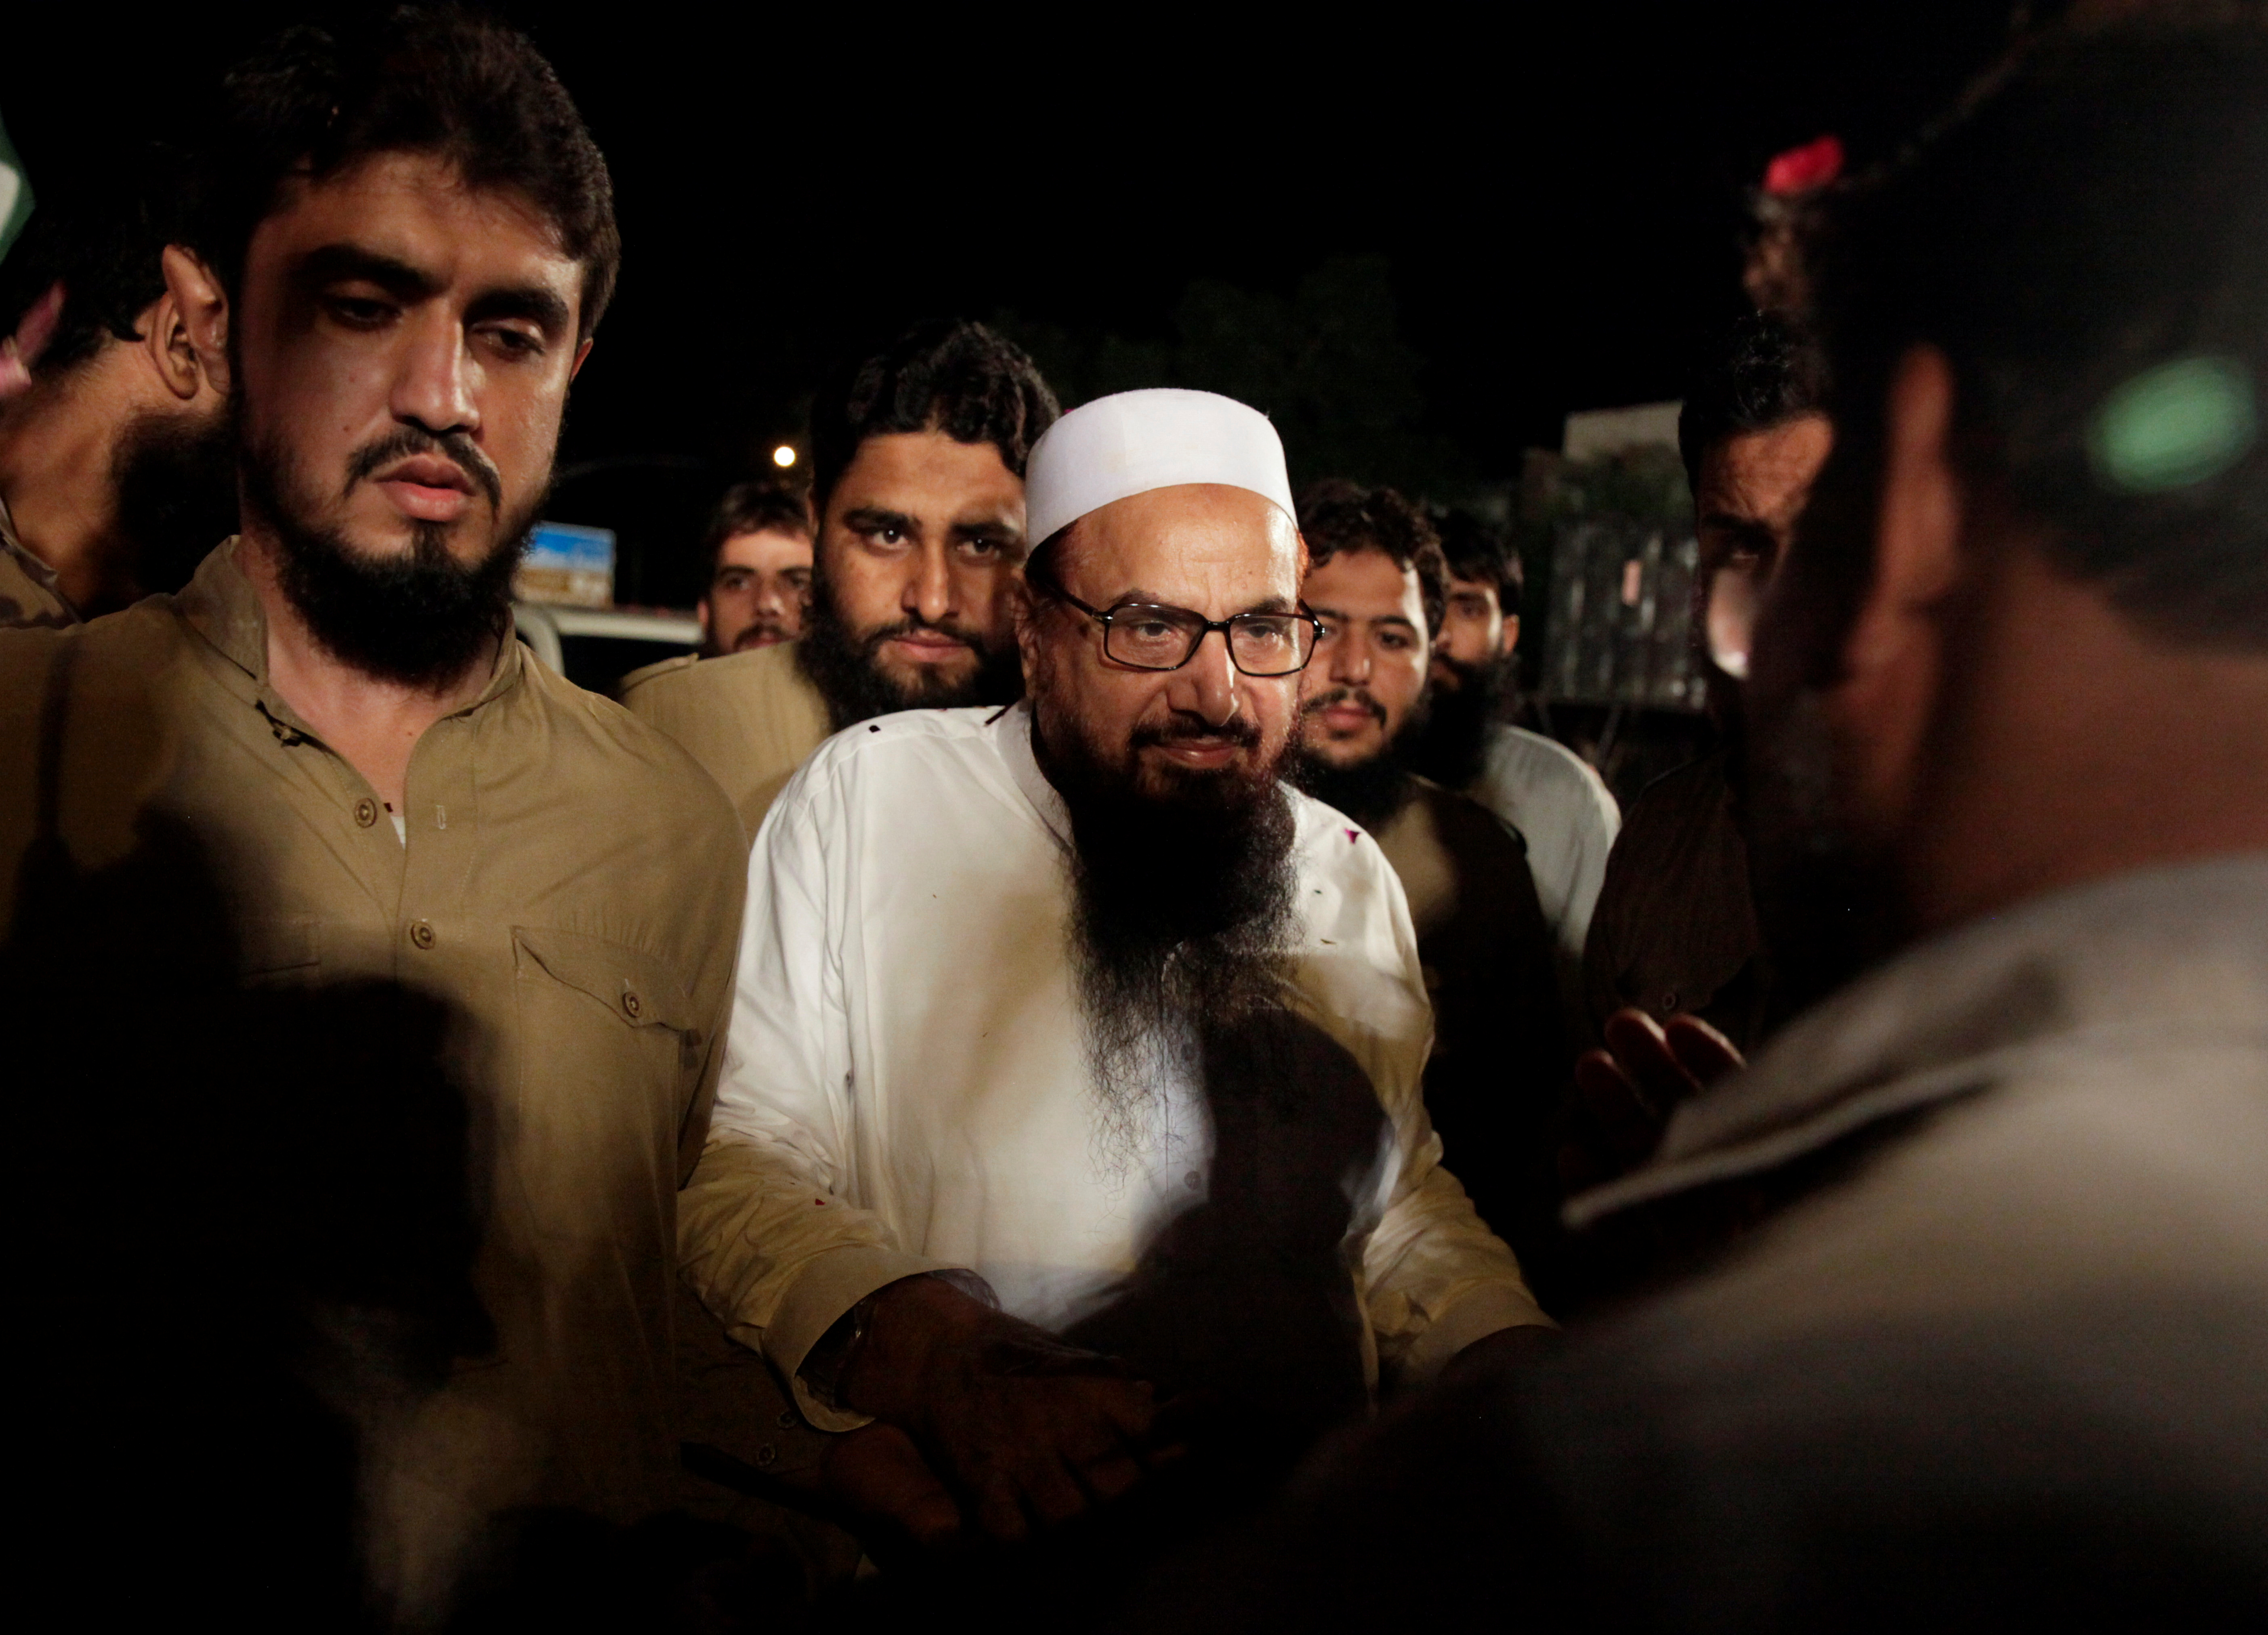 FILE PHOTO: Hafiz Muhammad Saeed, chief of the Islamic charity organisation Jamaat-ud-Dawa (JuD), arrives to attend a campaign rally of political party, Milli Muslim League (MML), ahead of general elections in Islamabad, Pakistan July 21, 2018. REUTERS/Faisal Mahmood